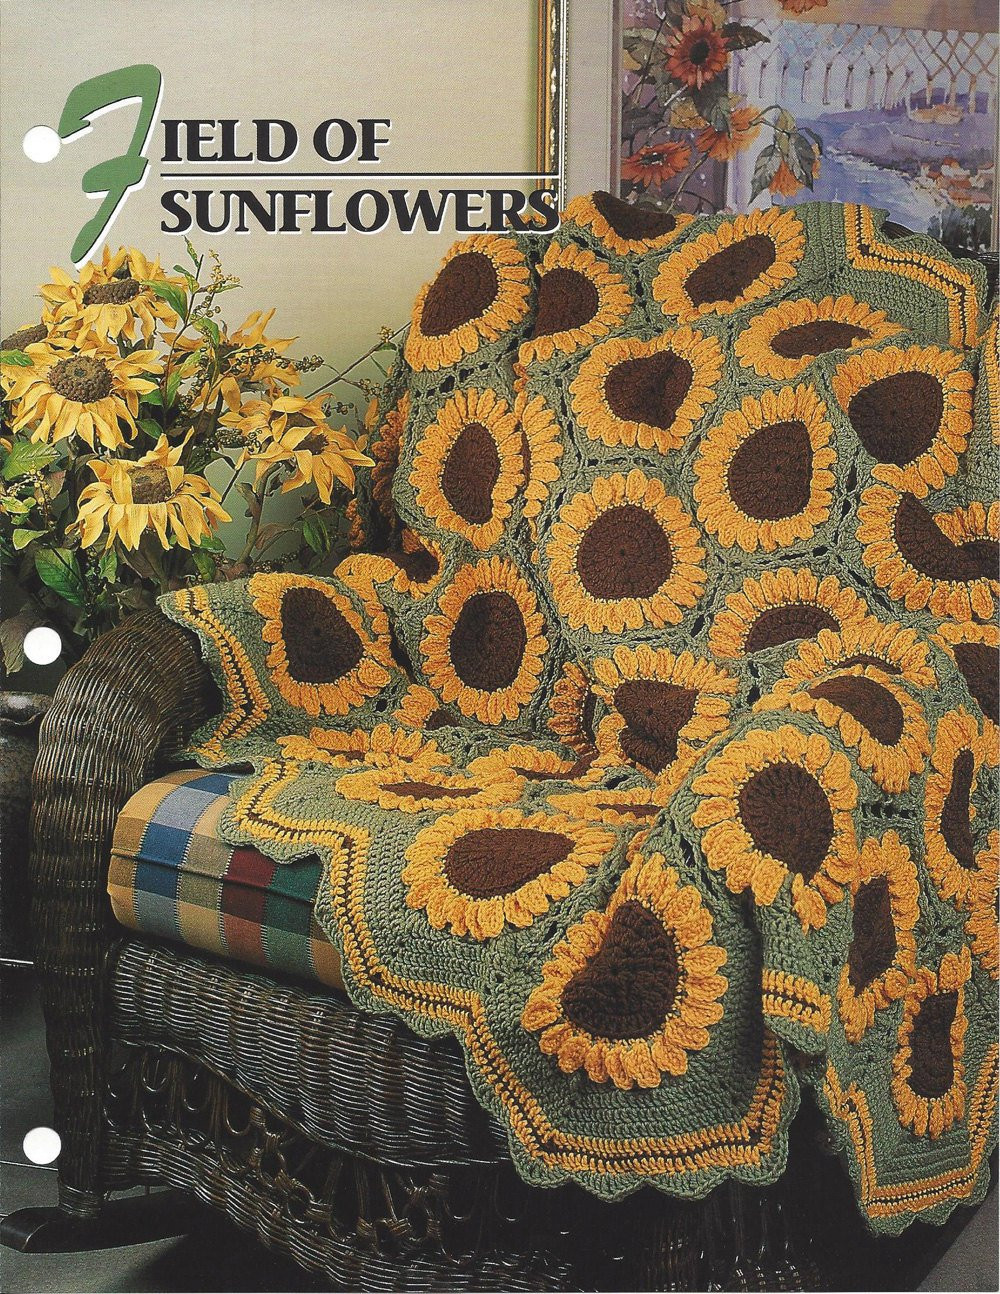 Crochet Quilts Inspirational Field Sunflowers Annie S Crochet Quilt & Afghan Of Unique 45 Pics Crochet Quilts